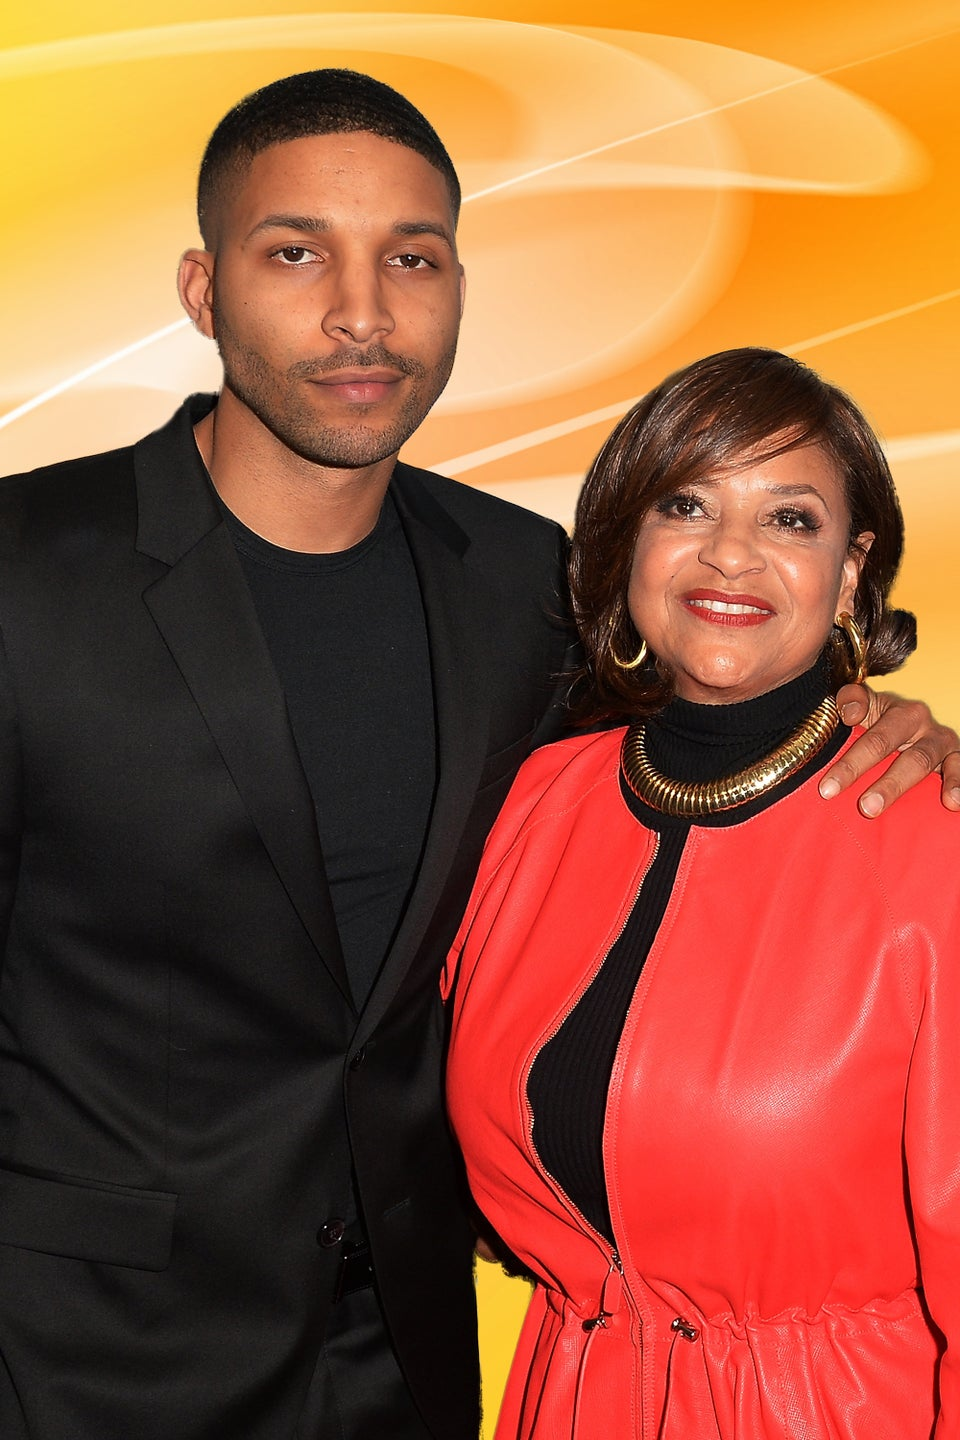 Debbie Allen On Her Son Being Pulled Over By Police: 'He Knows How To Behave'